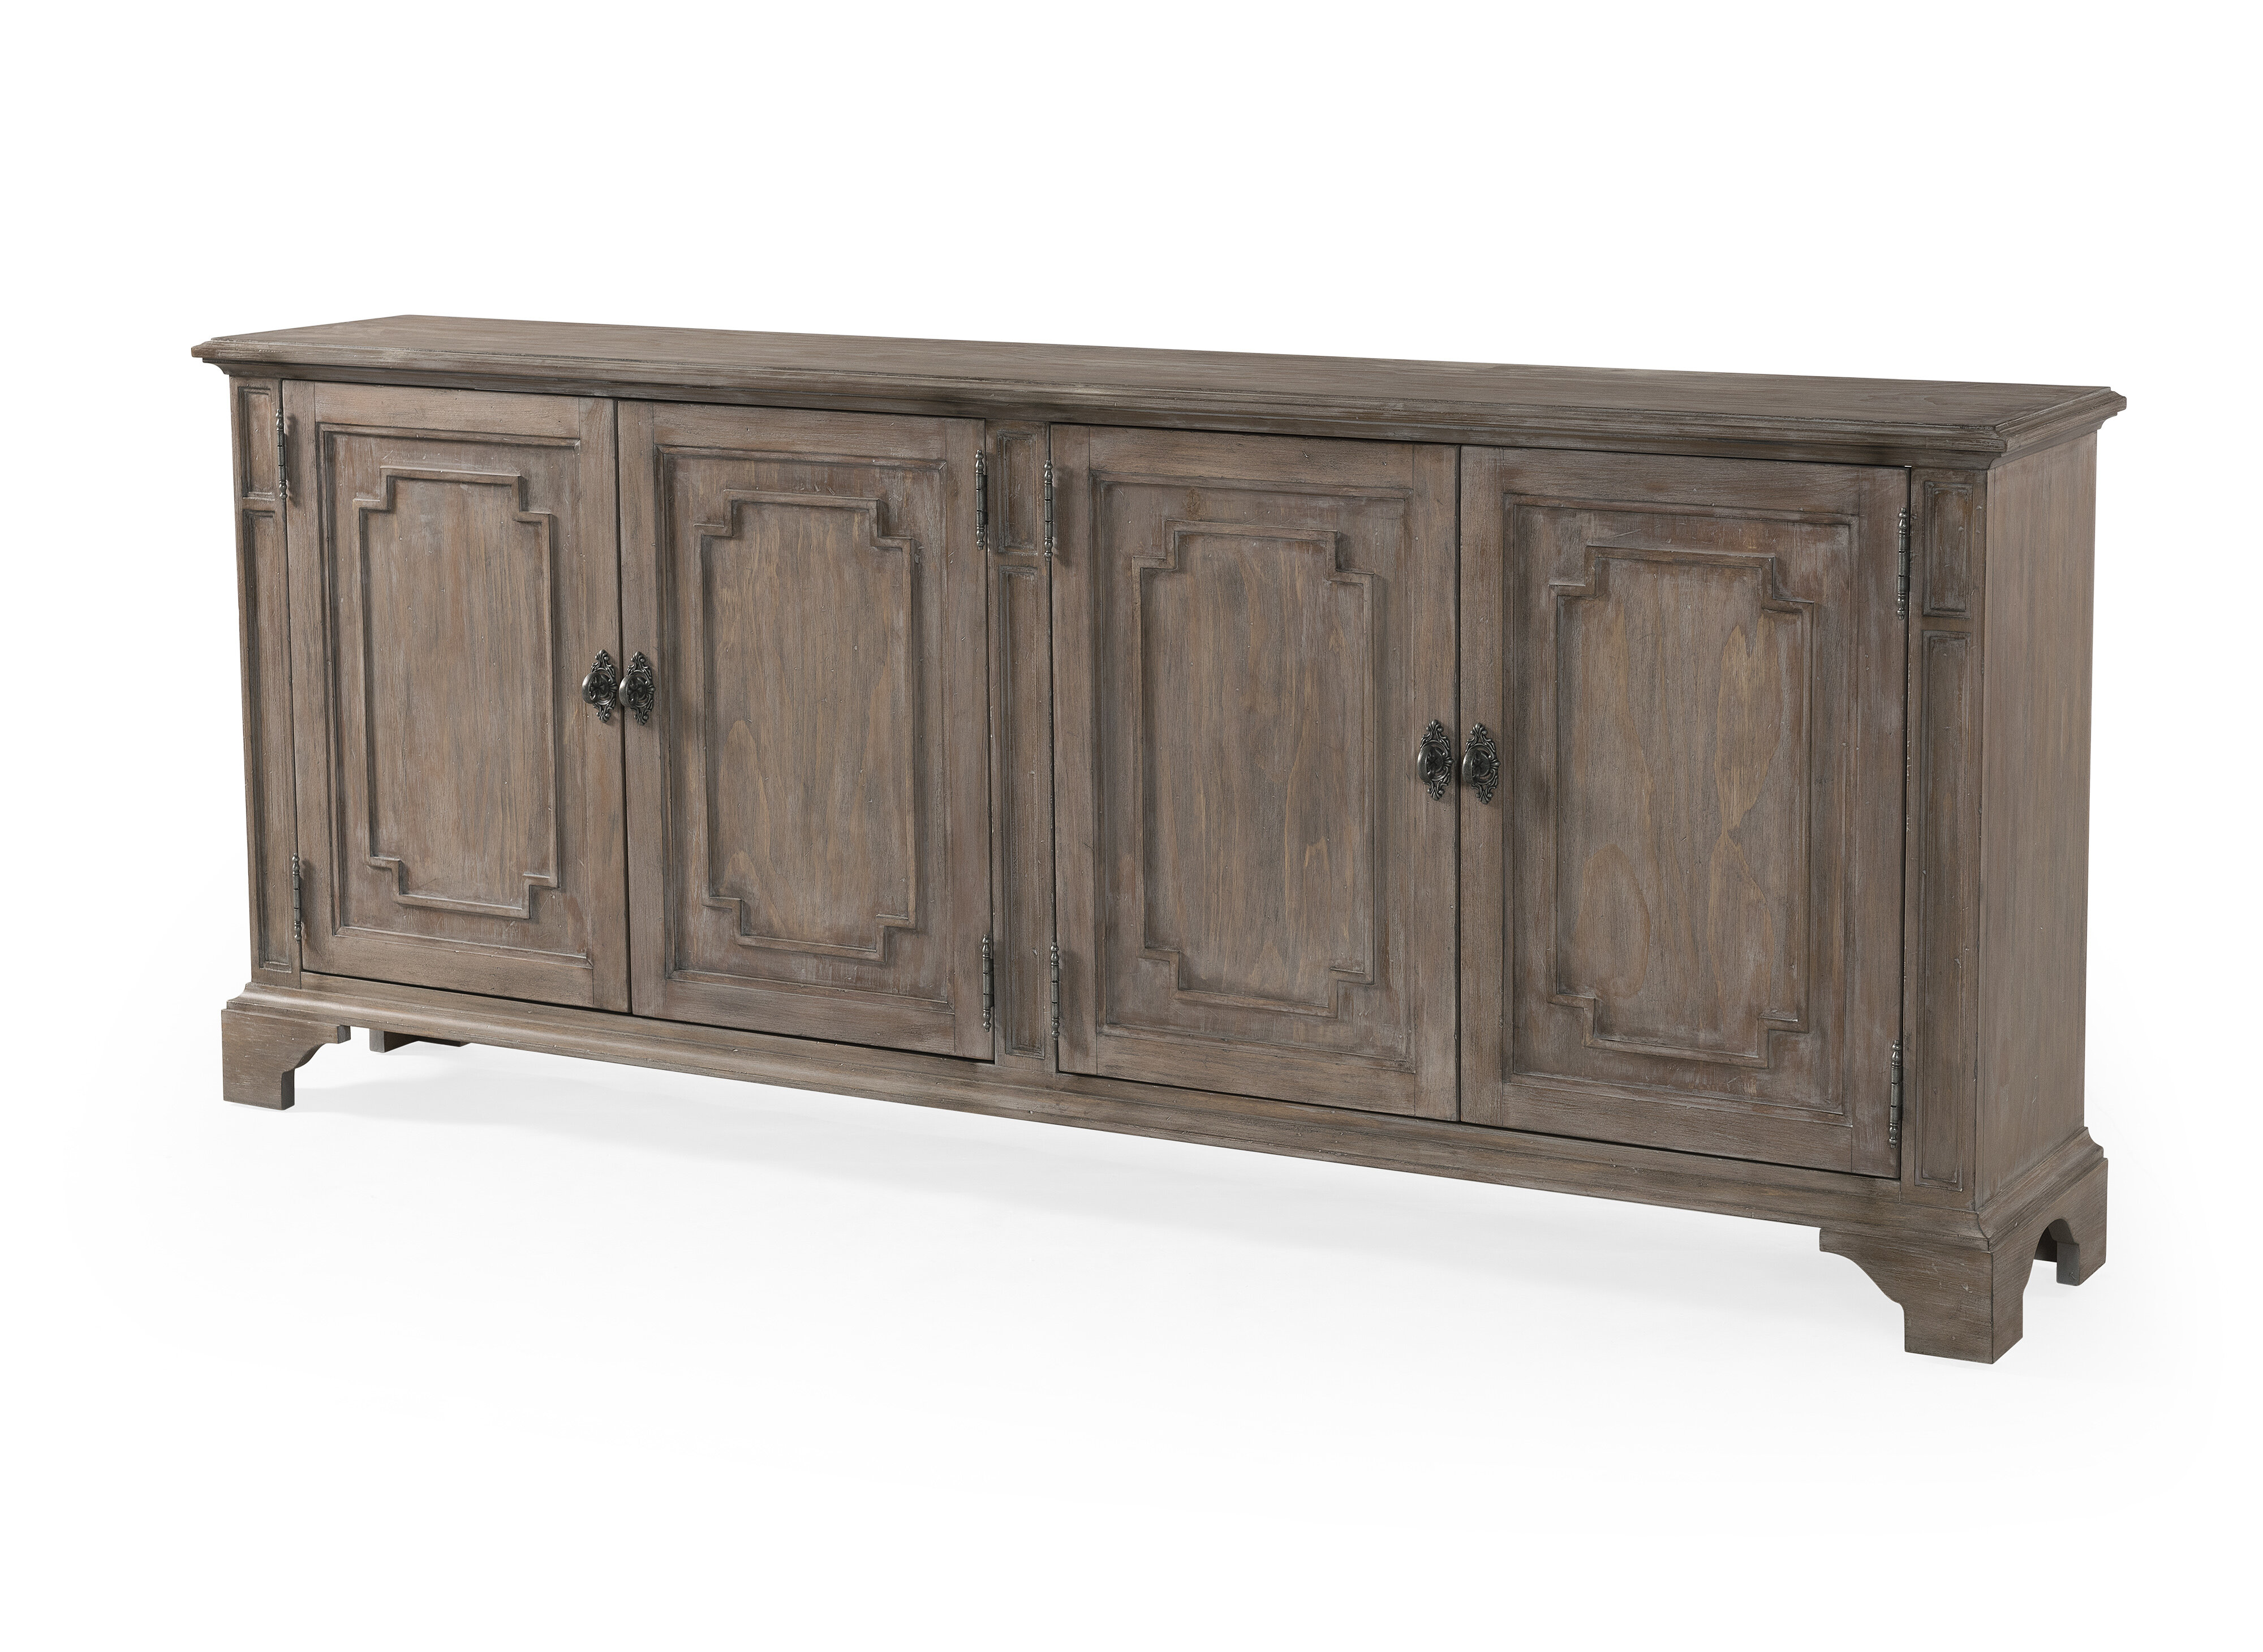 Cottage & Country One Allium Way® Cabinets & Chests You'll Love in